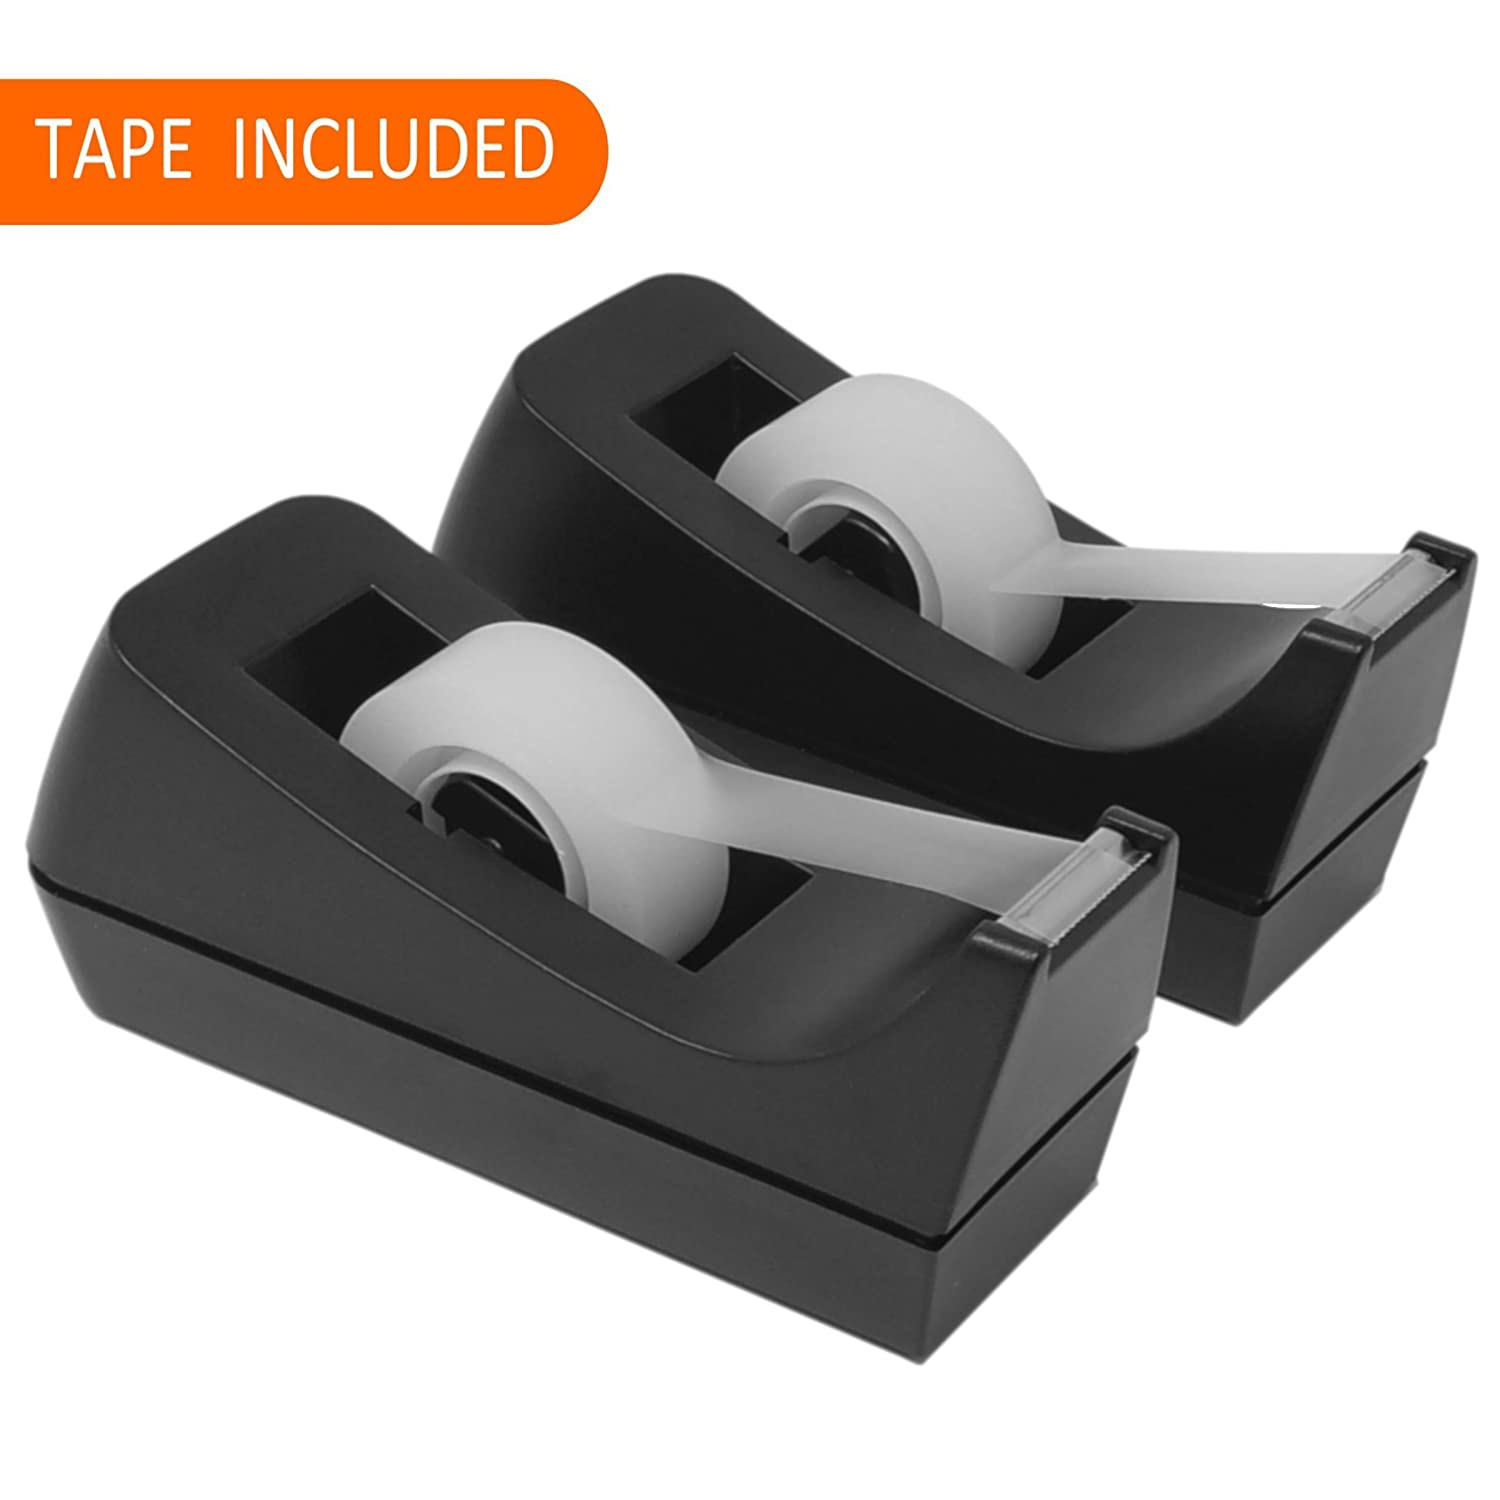 Desktop Tape Dispensers (2 Pack), Bundle Includes: 2 Tape Holders, 2 Rolls of Clear Tape, and 1 Free Letter Opener for Home or Office Joe' s Shop USA